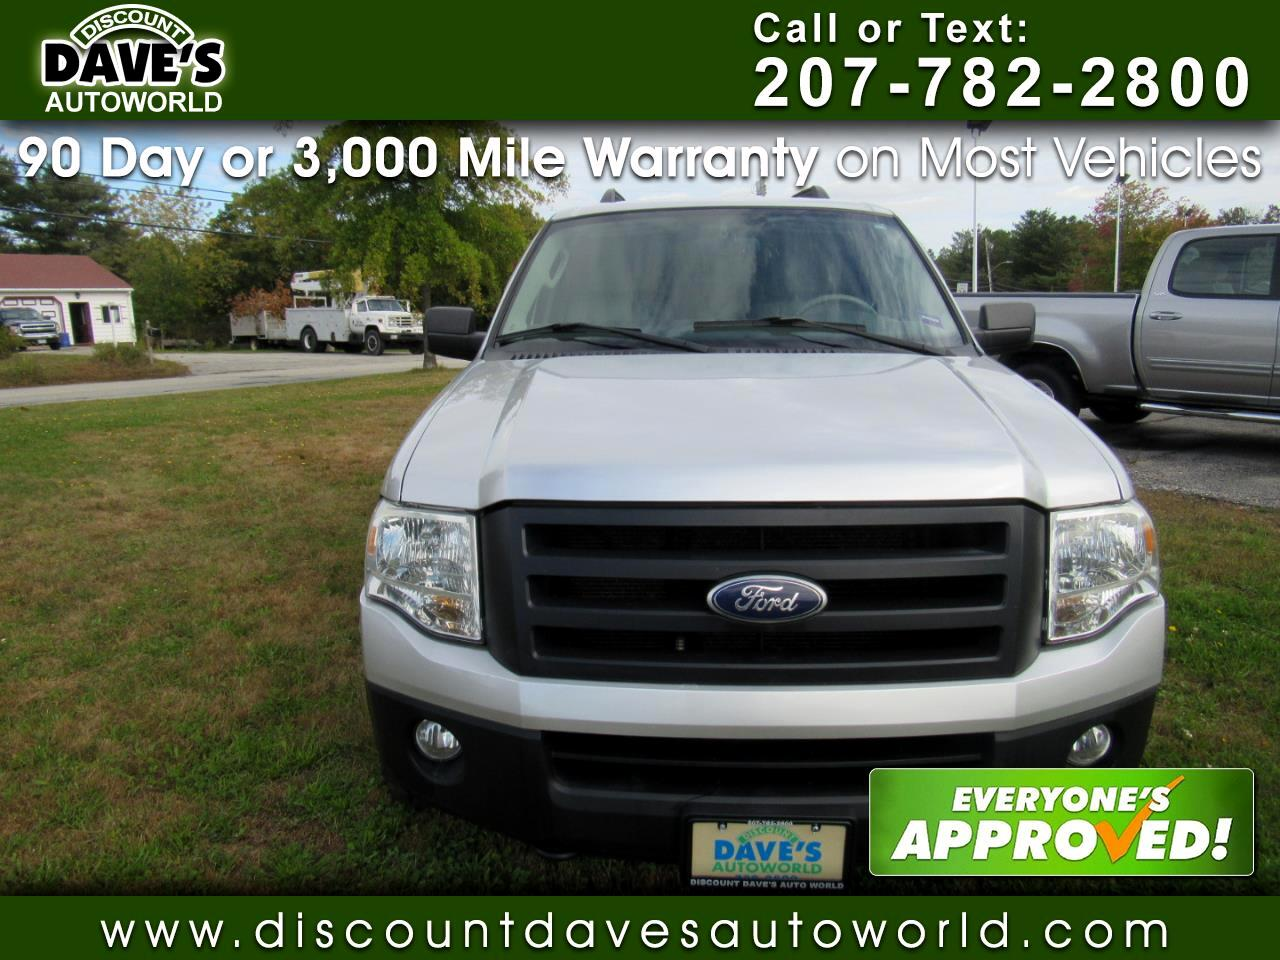 2010 Ford Expedition EL 4WD 4dr SSV